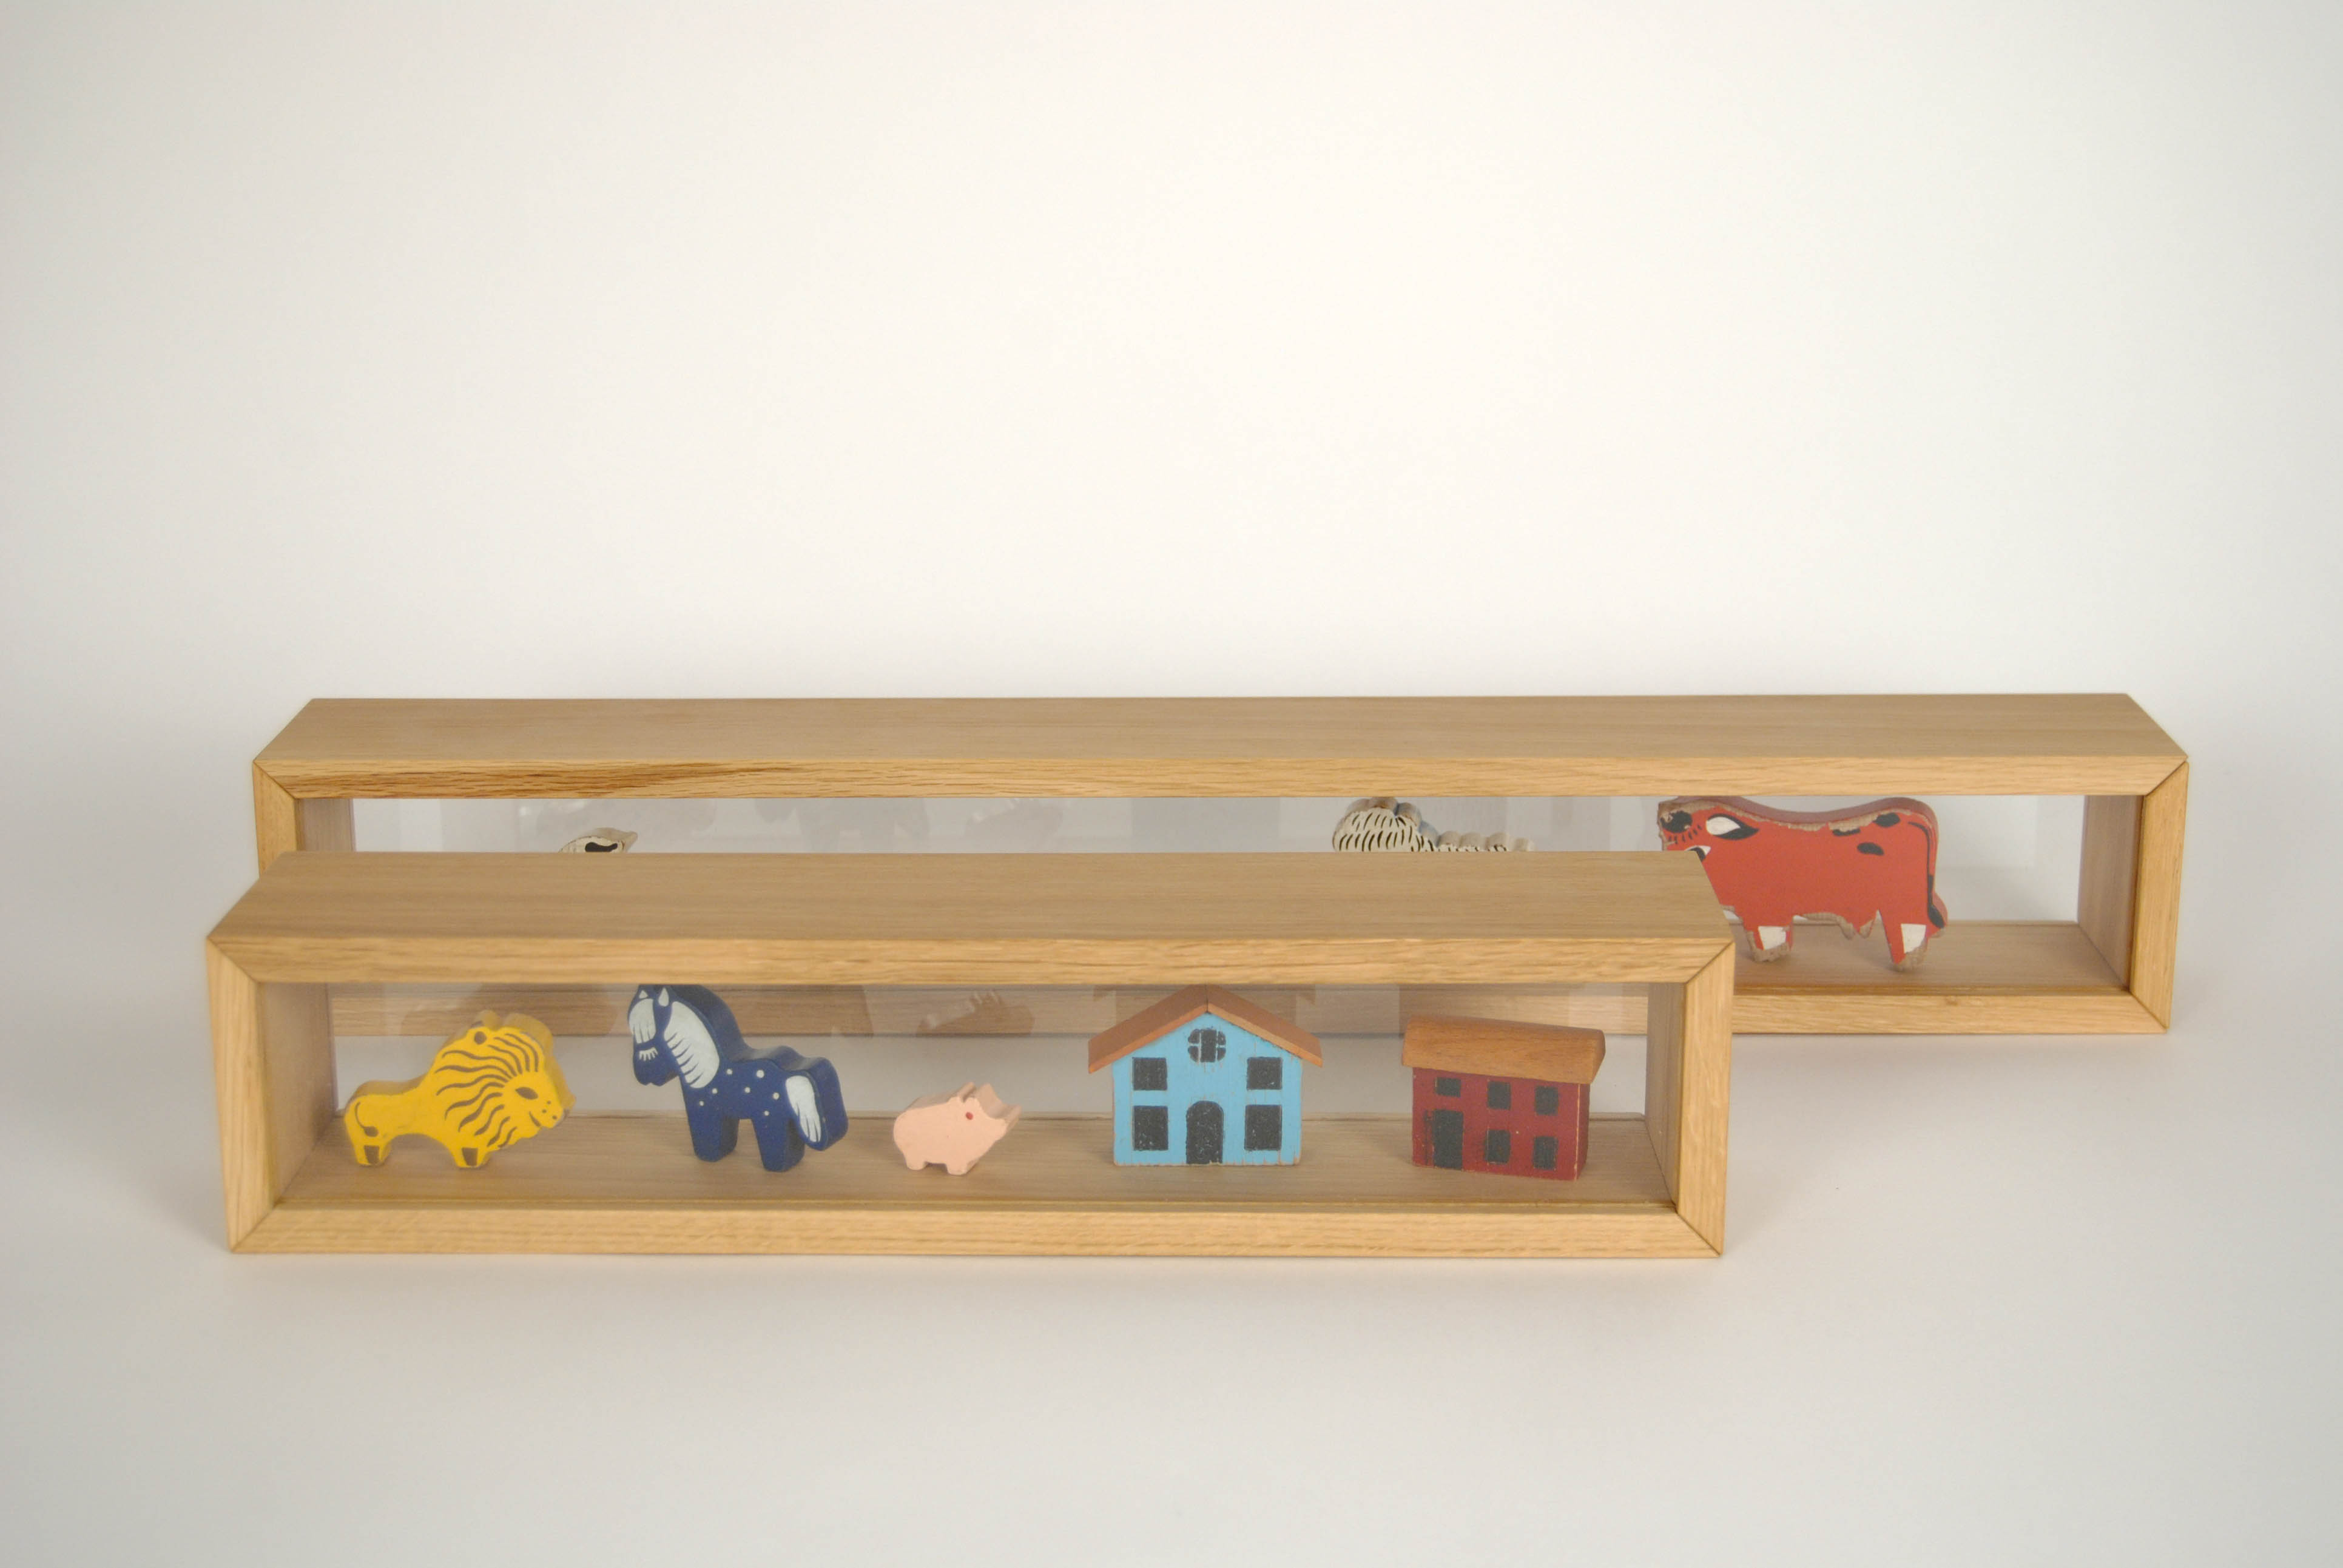 racks wooden table showcase with glass for objects